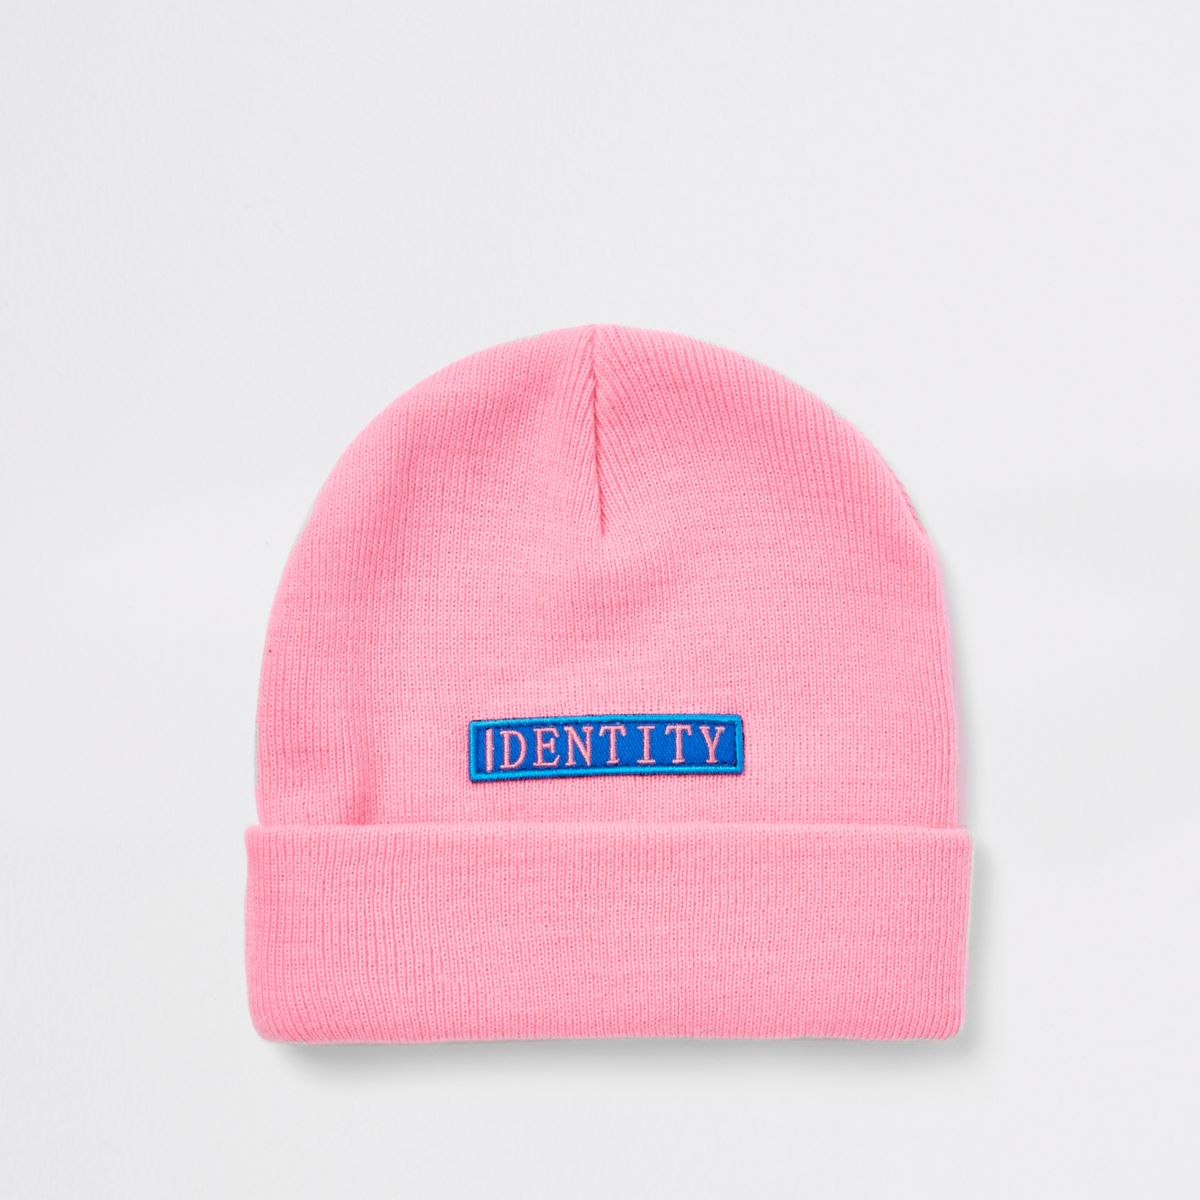 Be Inclusive pink 'Identity' beanie hat